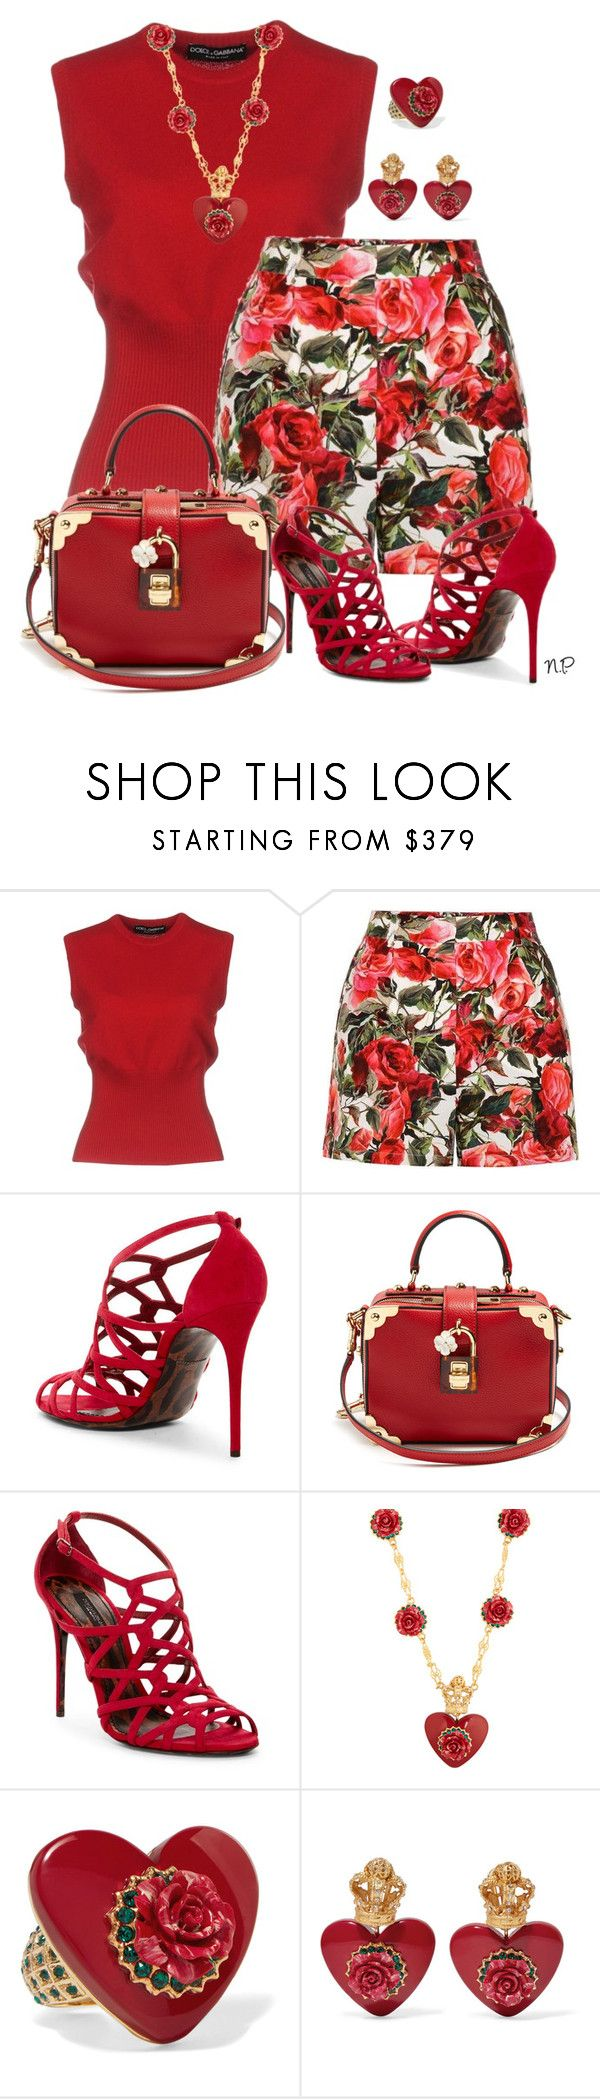 """Dolce&Gabbana"" by nuria-pellisa-salvado ❤ liked on Polyvore featuring Dolce&Gabbana, Dolce, polyvorecommunity, StreetChic, polyvorefashion and polyvoreset"